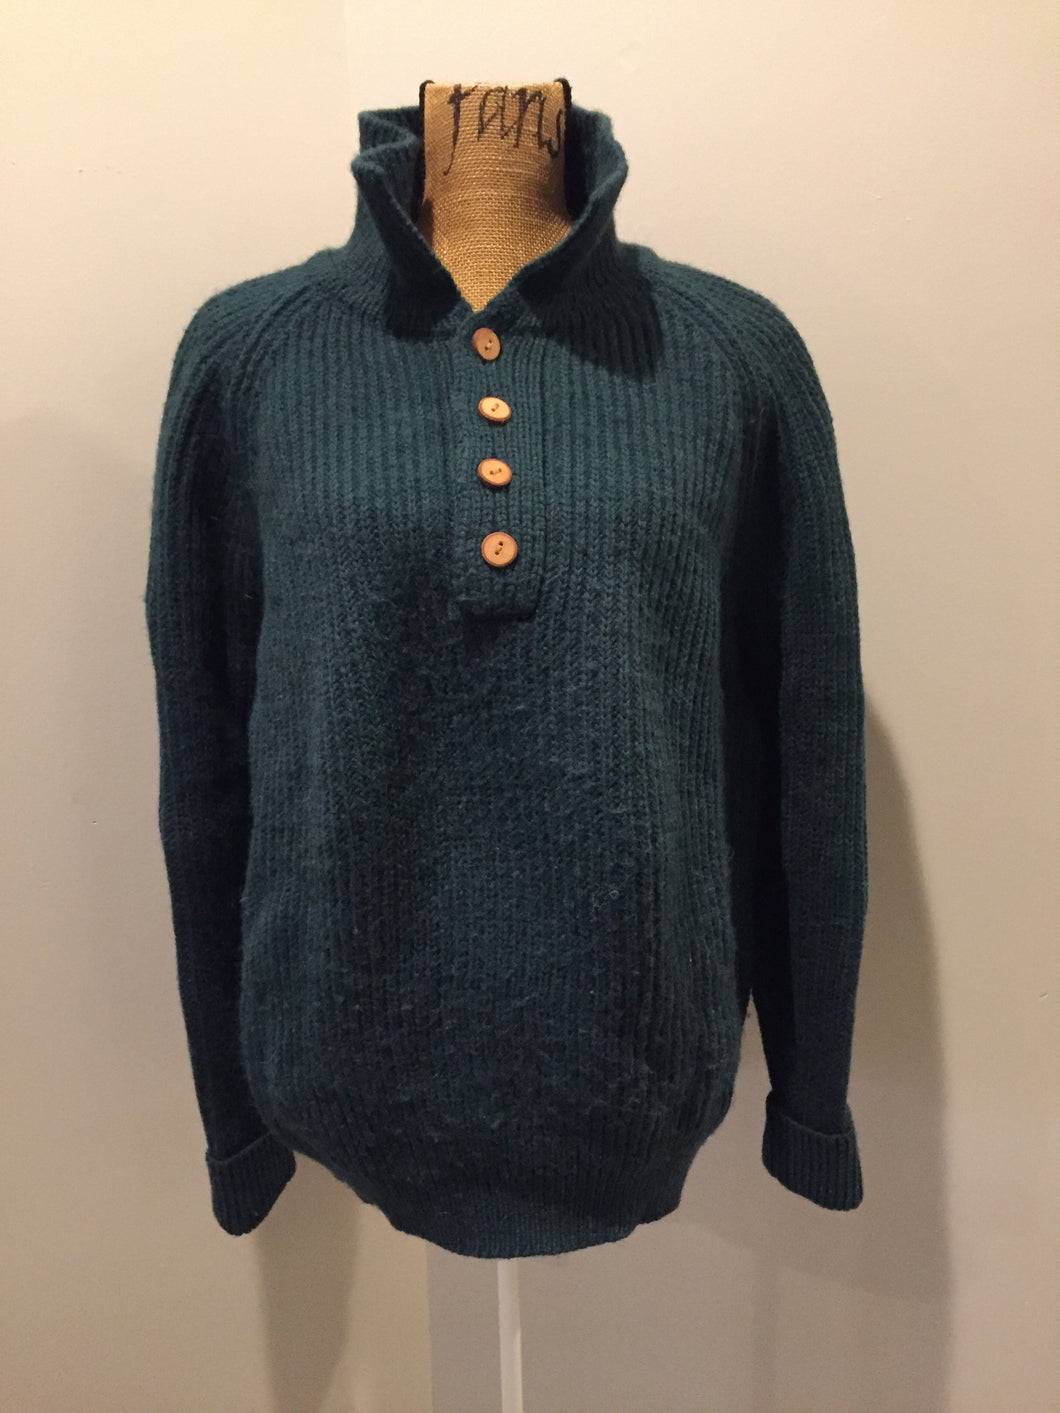 Kingspier Vintage - Great Northern Knitters green wool button up sweater. Made in Canada, Size M/L.